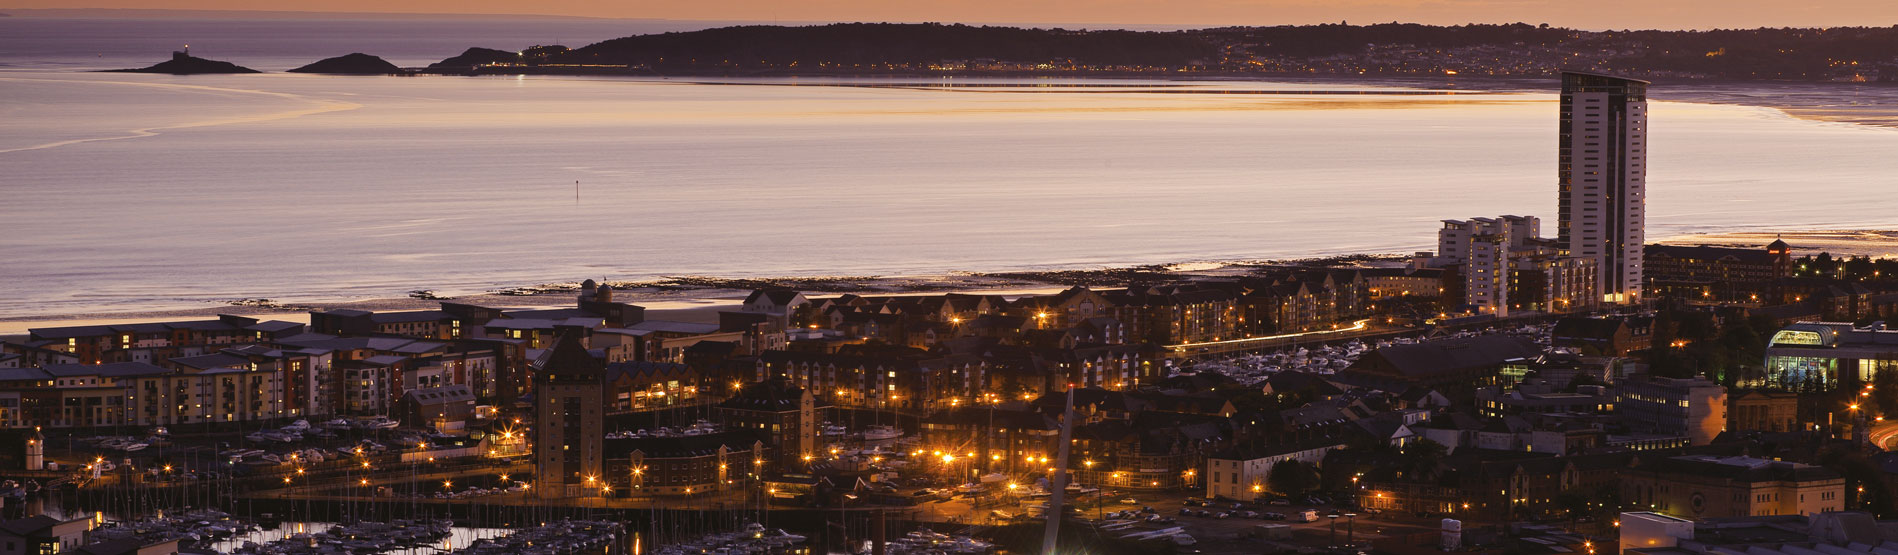 Ariel view of Swansea Bay at Sunset.